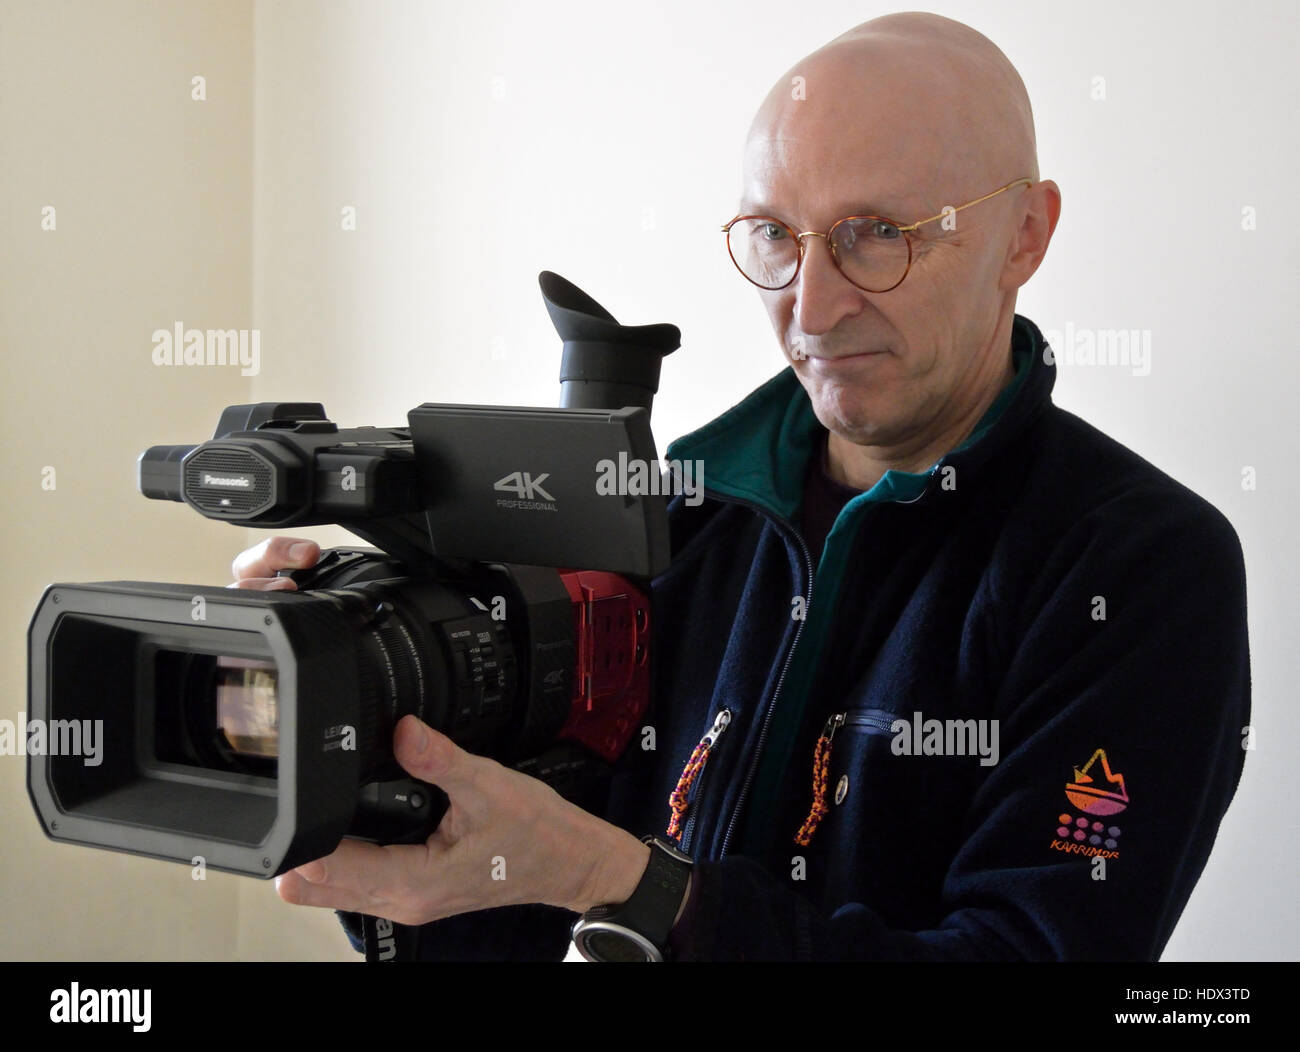 Clive Tully FRGS holding Panasonic AG-DVX200 professional video cameraStock Photo